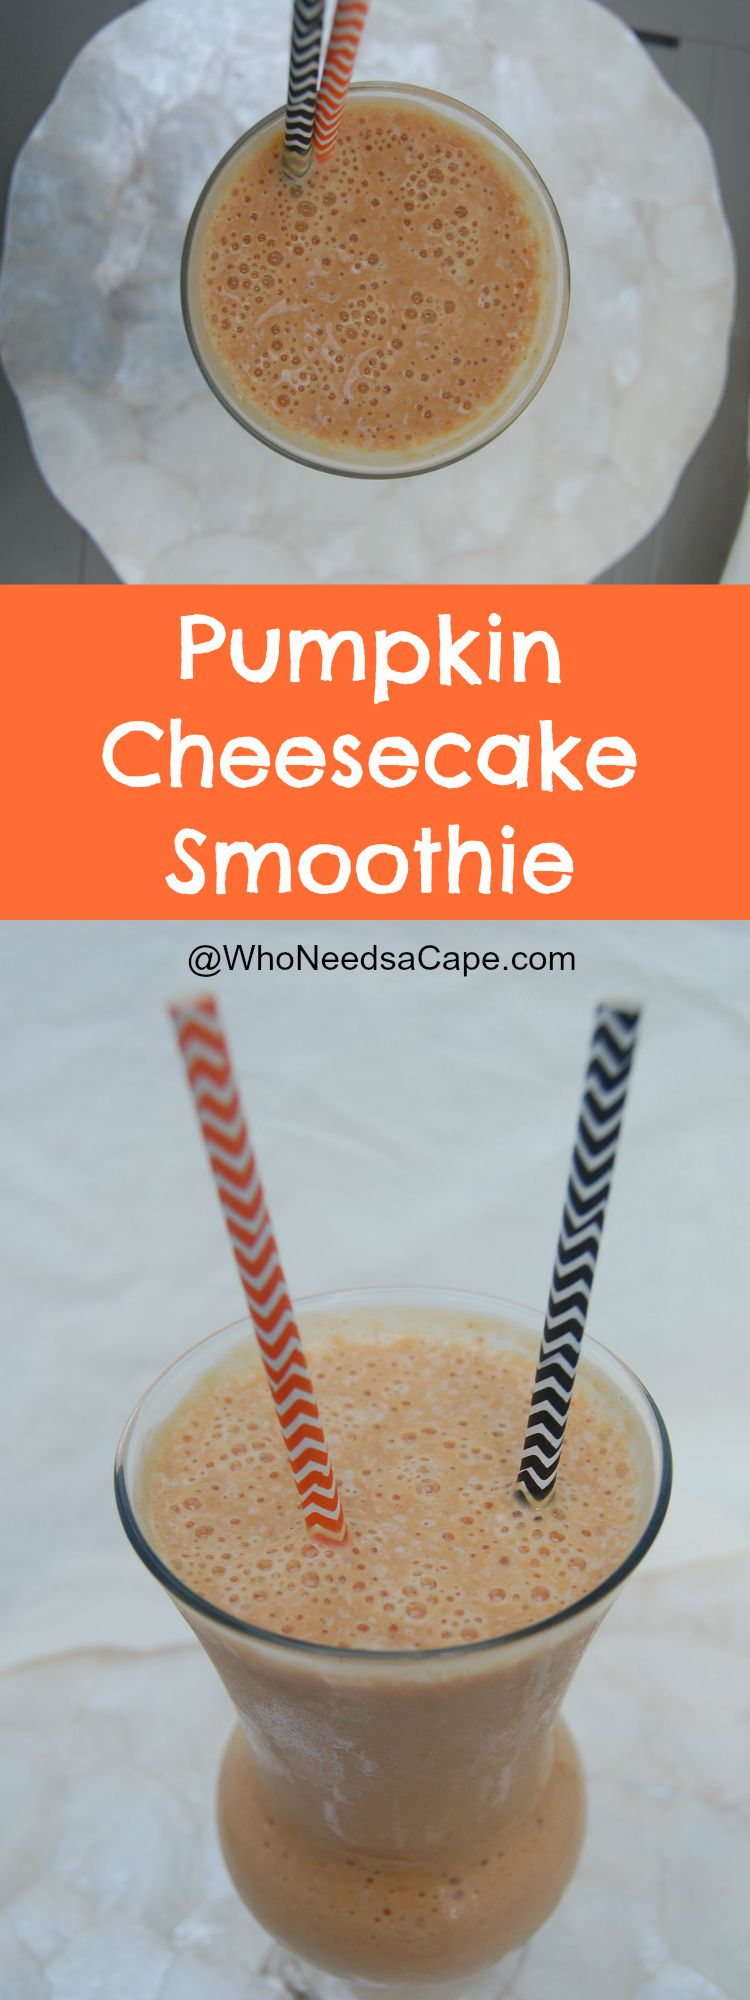 Pumpkin Cheesecake Smoothie 6